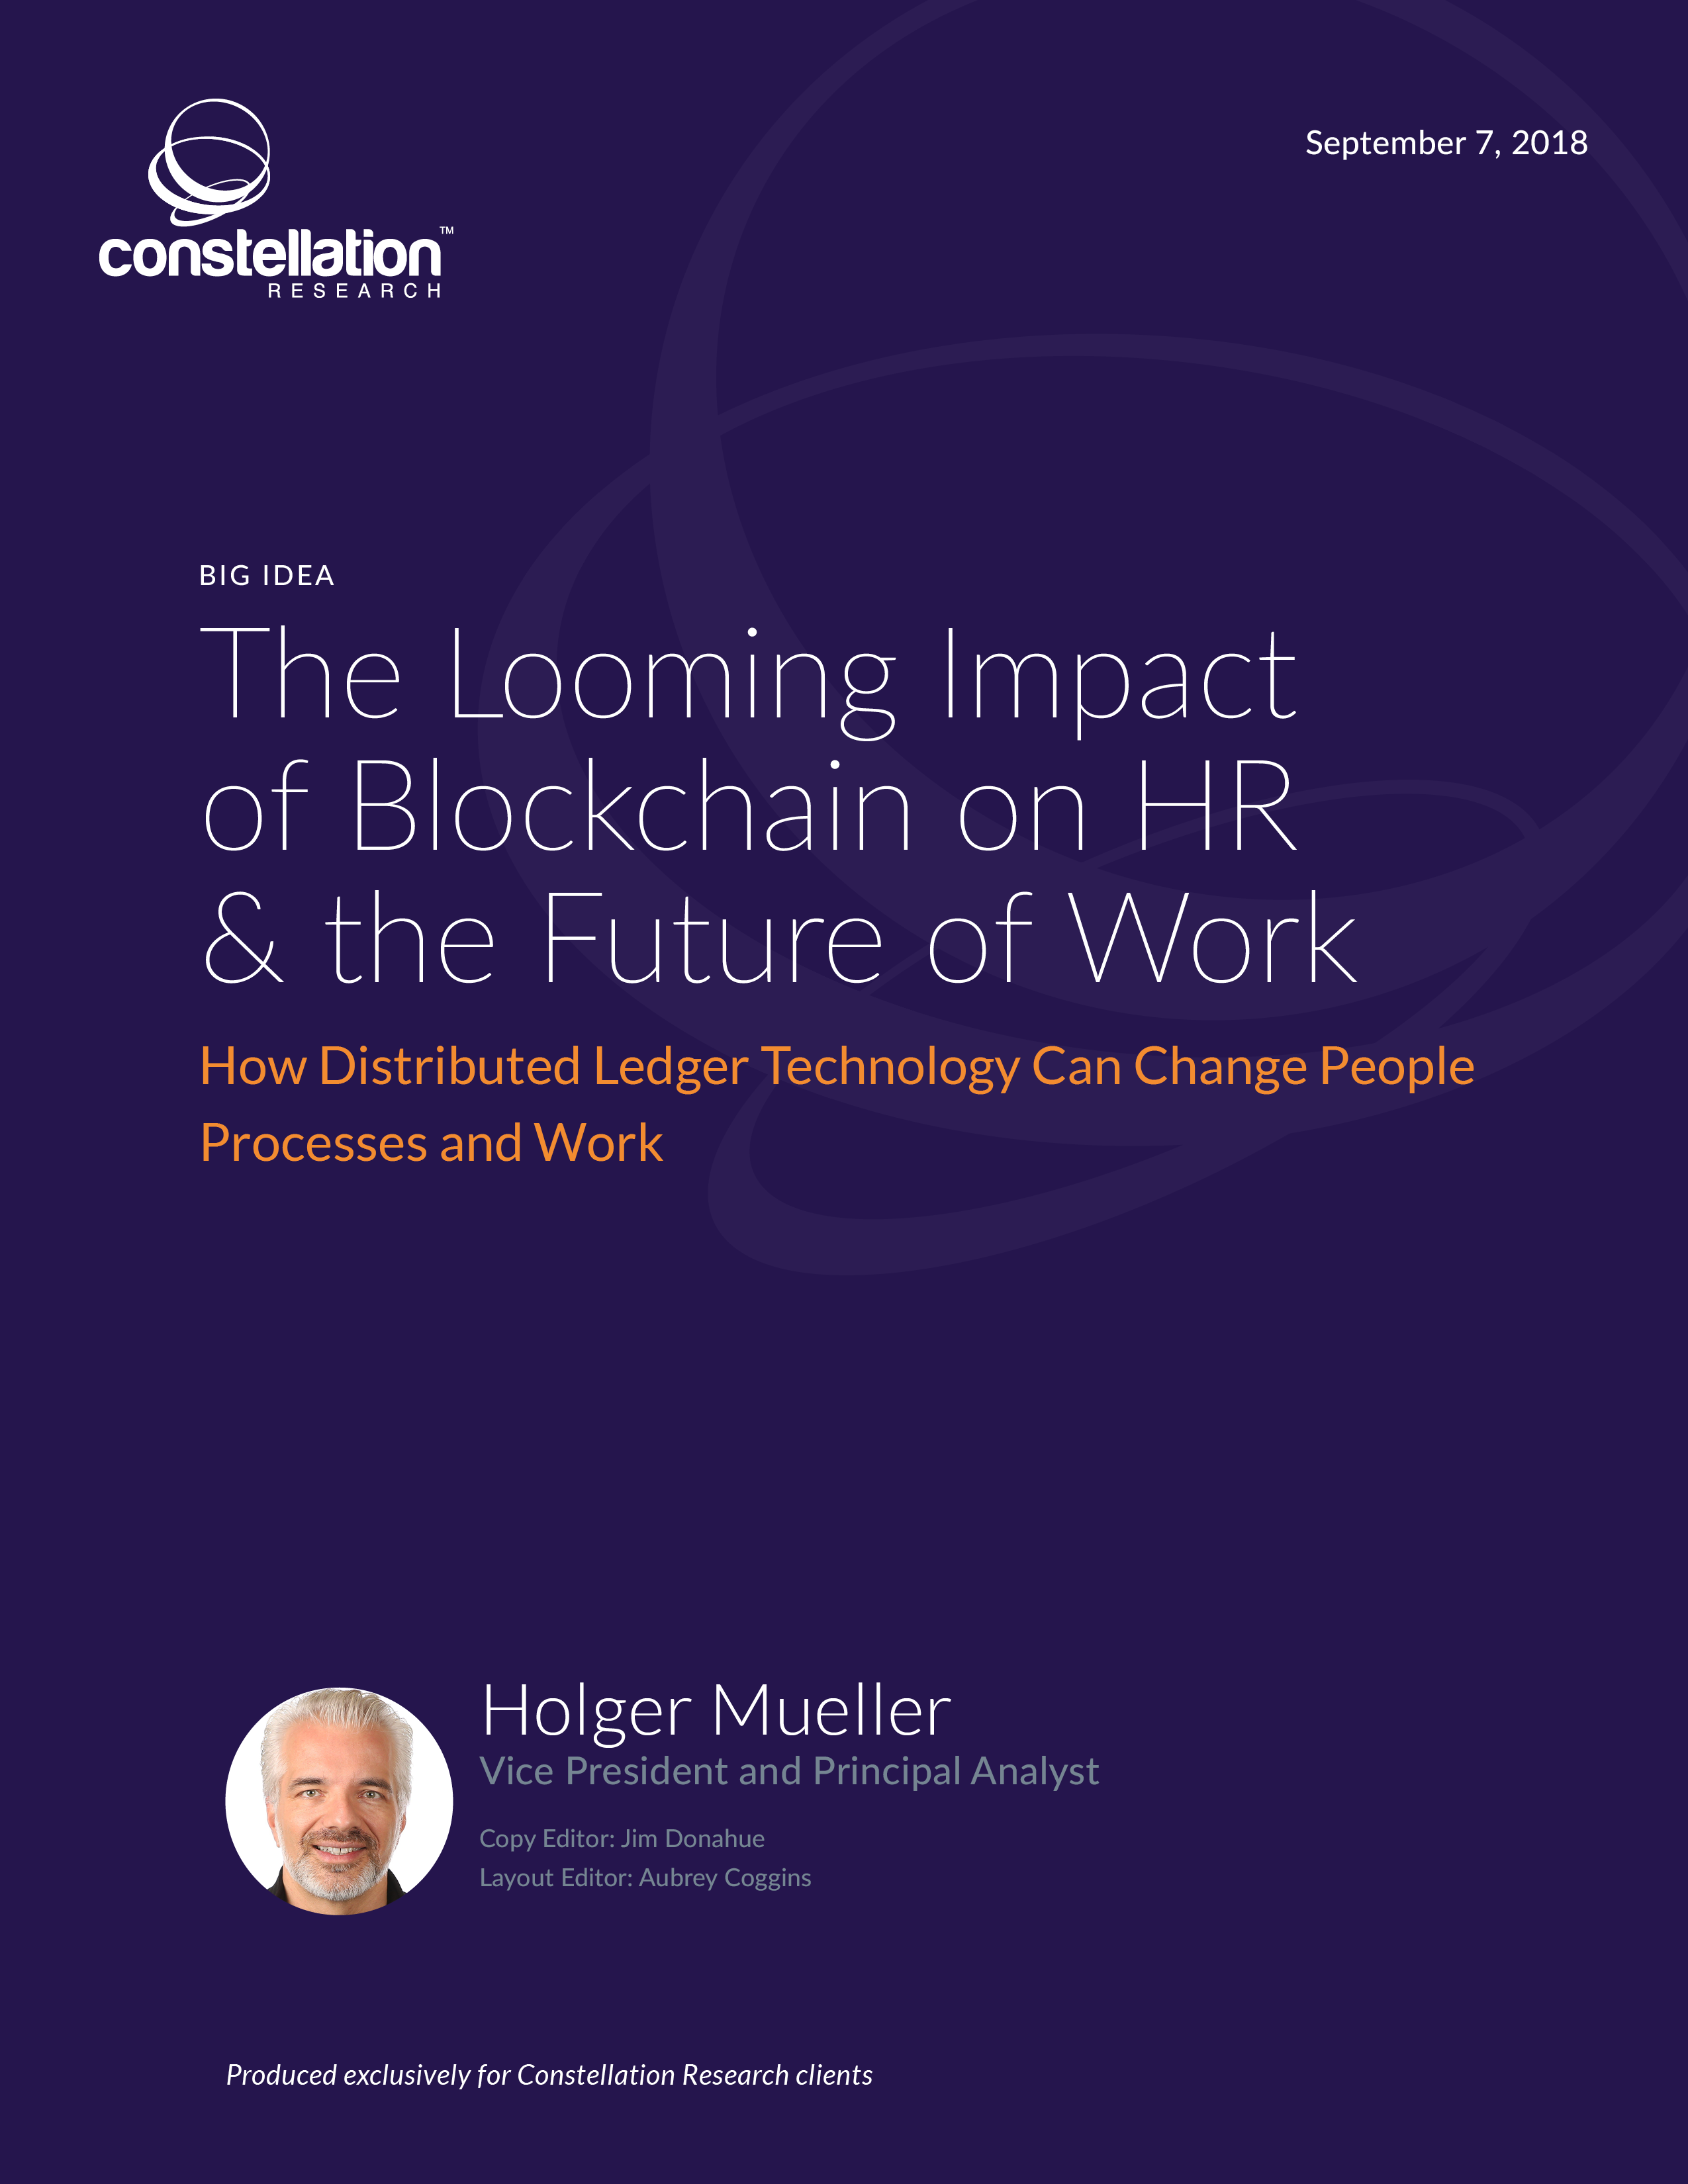 Looming Impact of Blockchain on HR and Future of Work